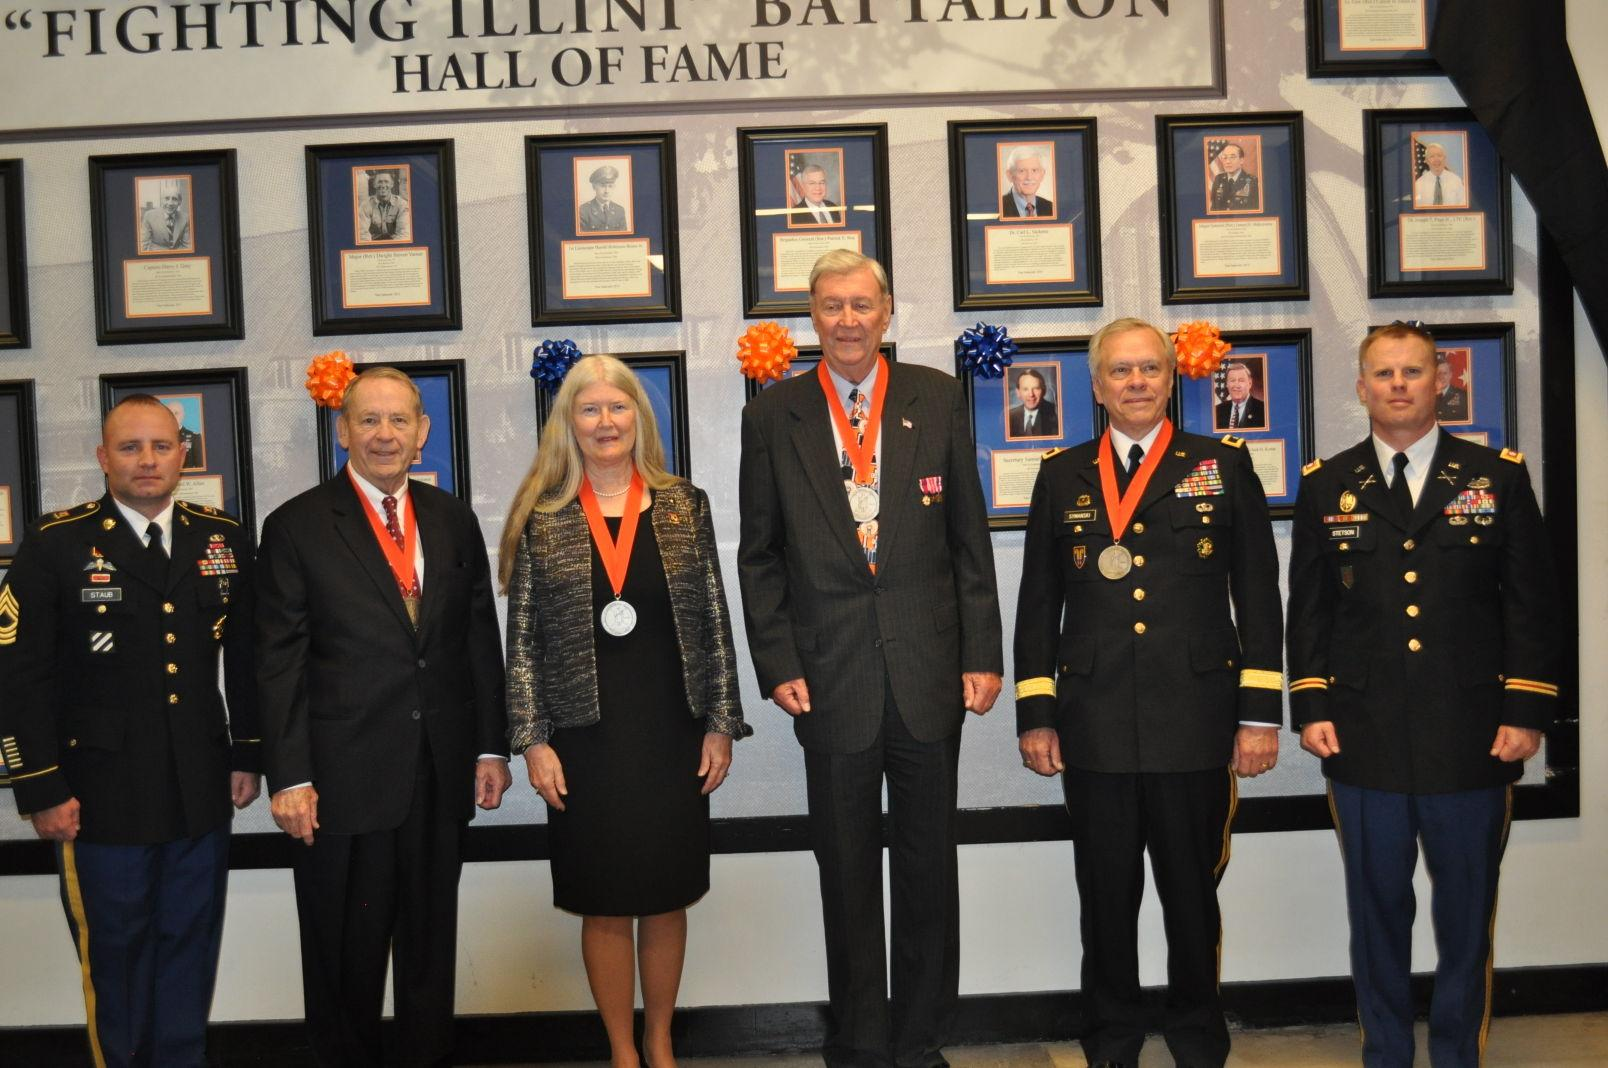 Four University ROTC alumni being awarded their medals at the 2014 Hall of Fame ceremony.